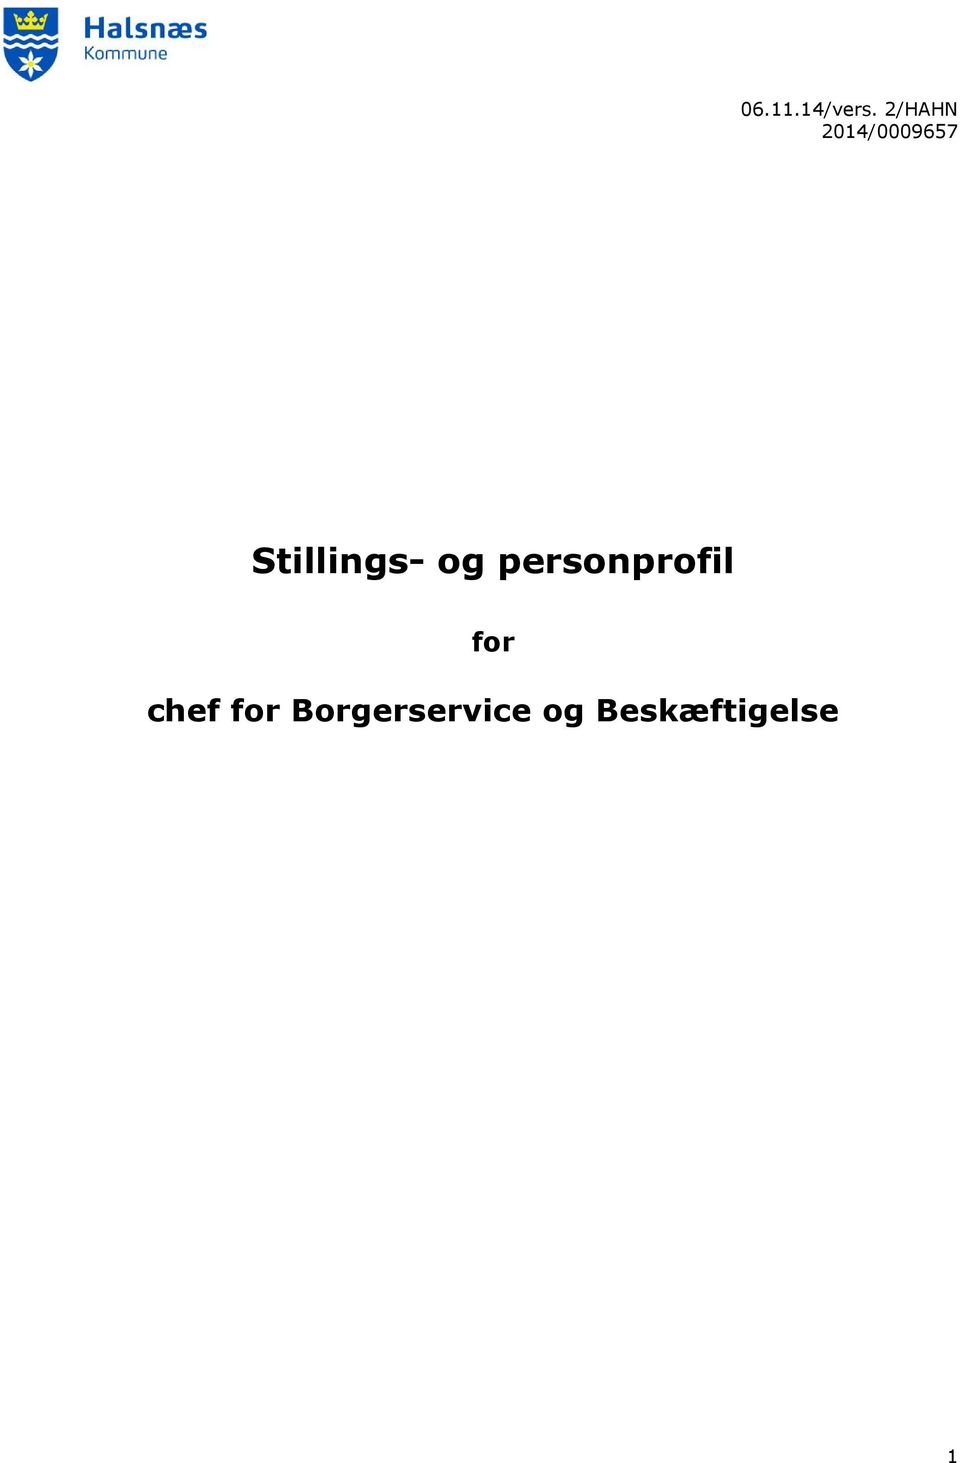 Stillings- og personprofil